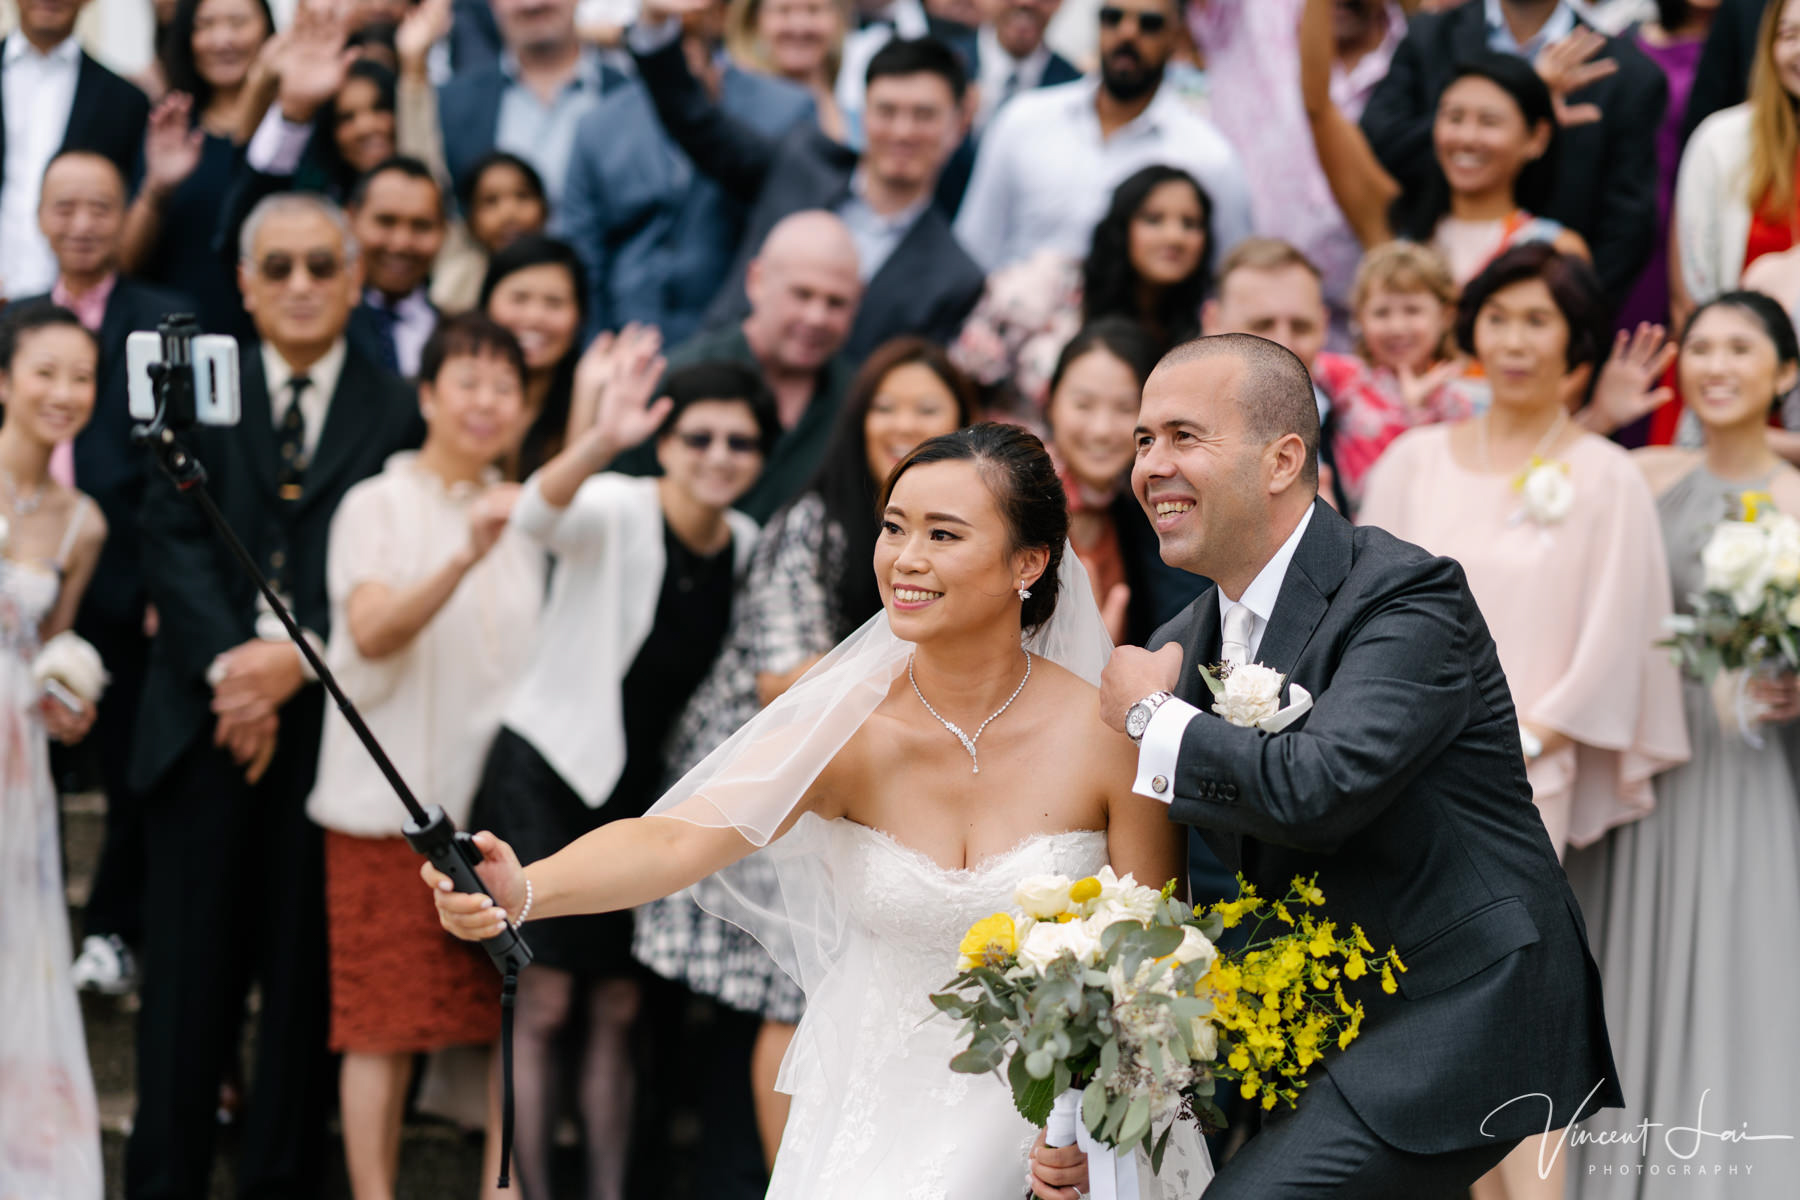 Wedding at St Nicholas Greek Orthodox Church - Photographer Vincent Lai